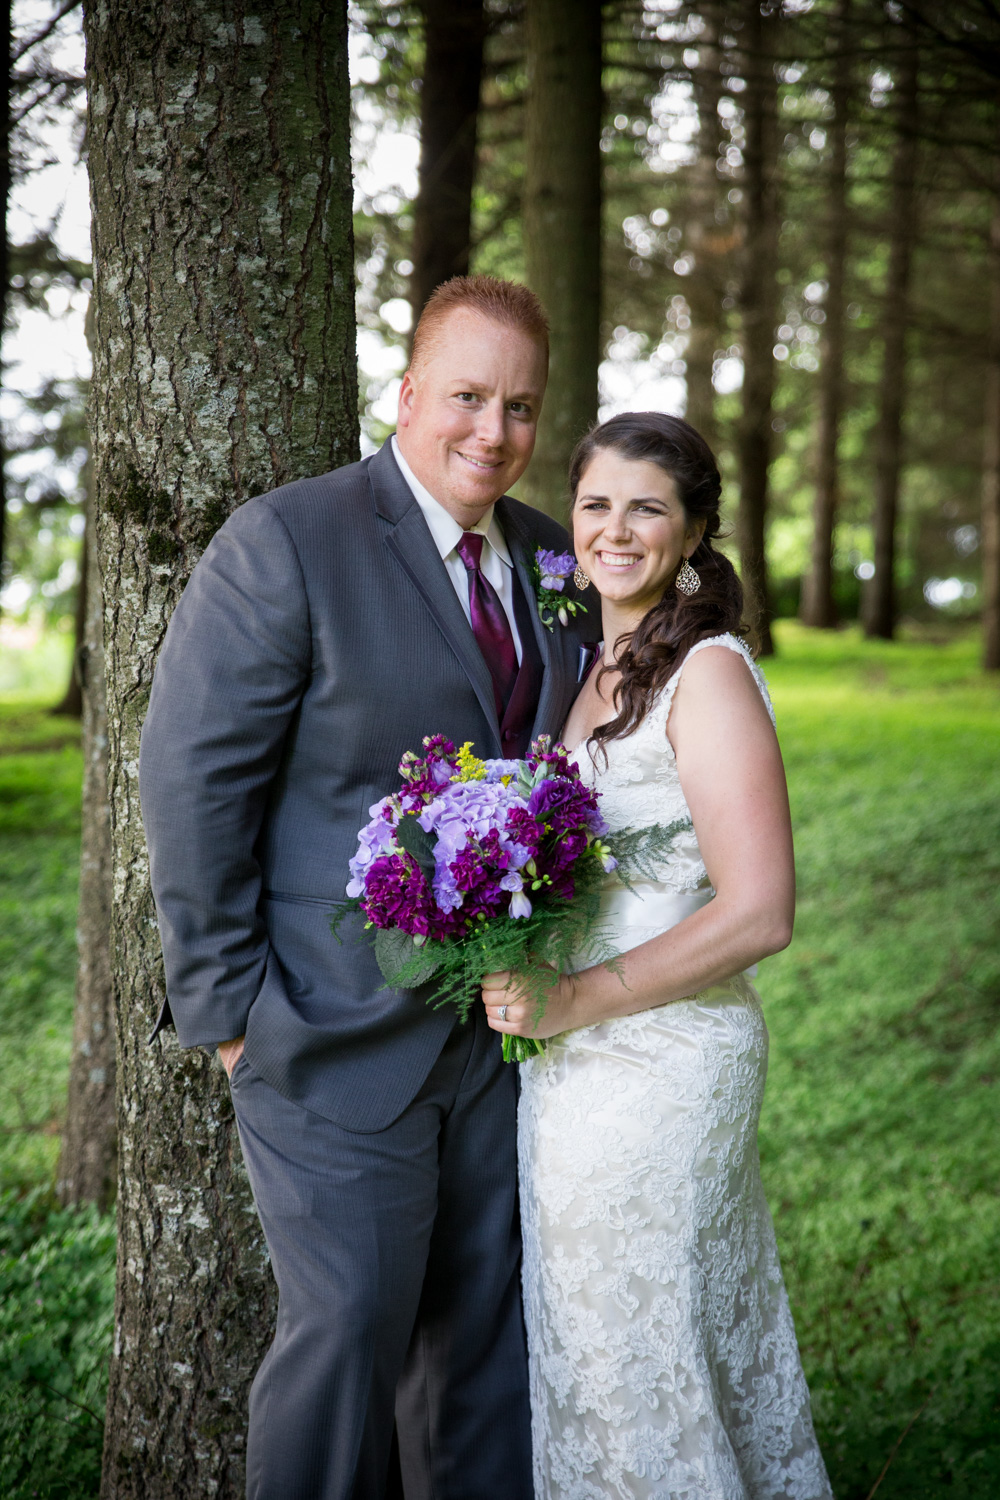 Dallas Oregon Wedding Photography Focal Point Studios-169.jpg